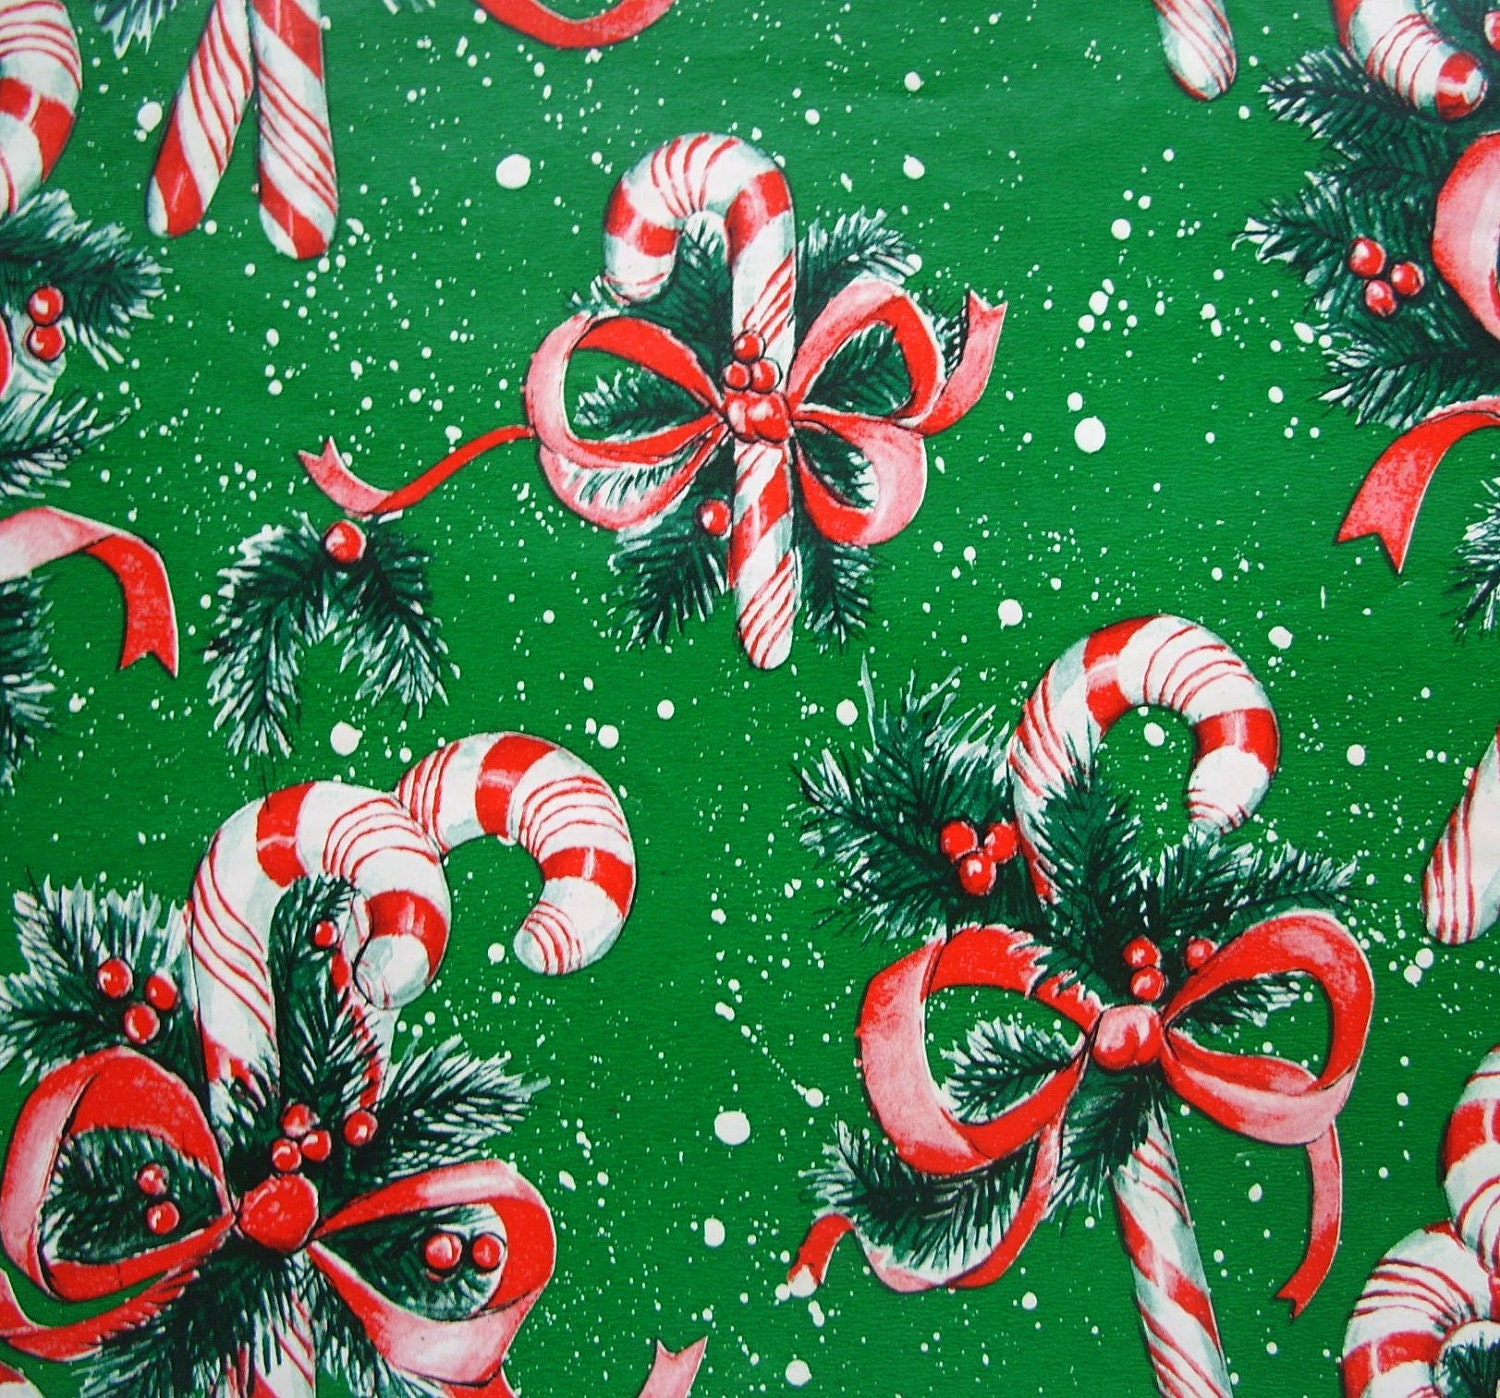 Vintage candy canes on green christmas wrapping paper full